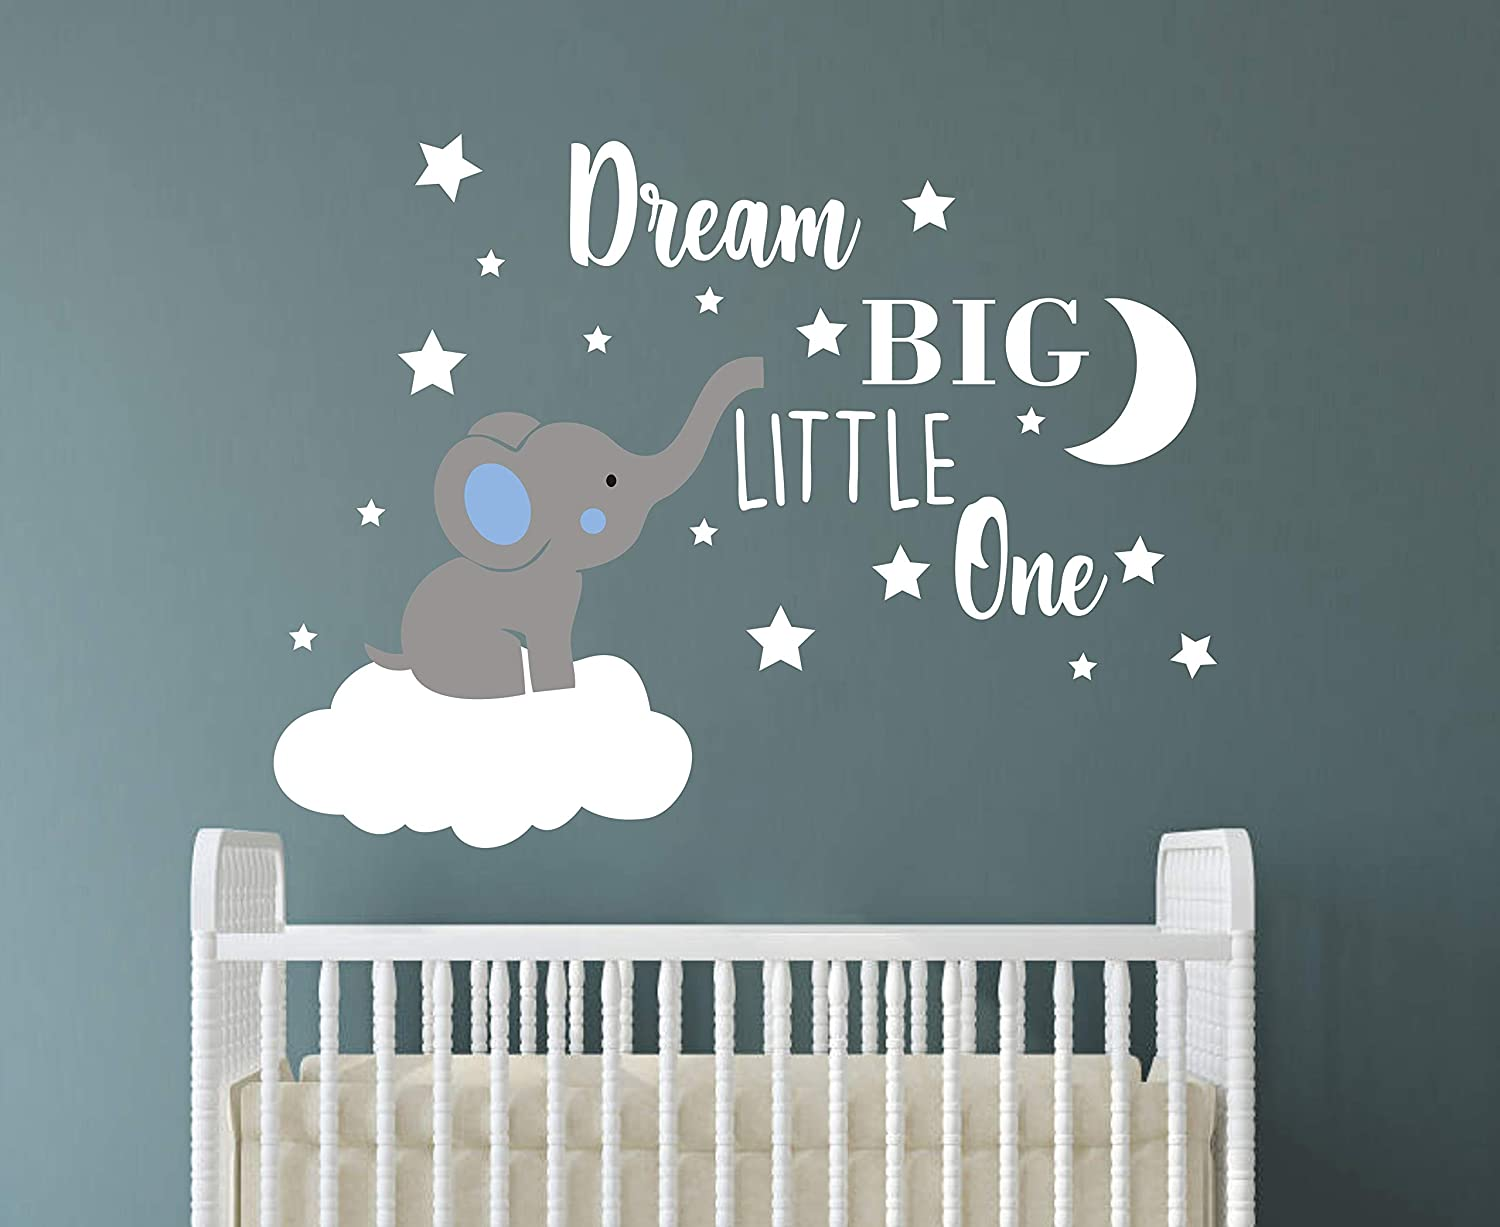 Amazon Com Dream Big Little One Elephant Wall Decal Quote Wall Stickers Baby Room Wall Decor Vinyl Wall Decals For Children Baby Kids Boy Girl Bedroom Nursery Decor Y42 Blue White Boy Home Kitchen